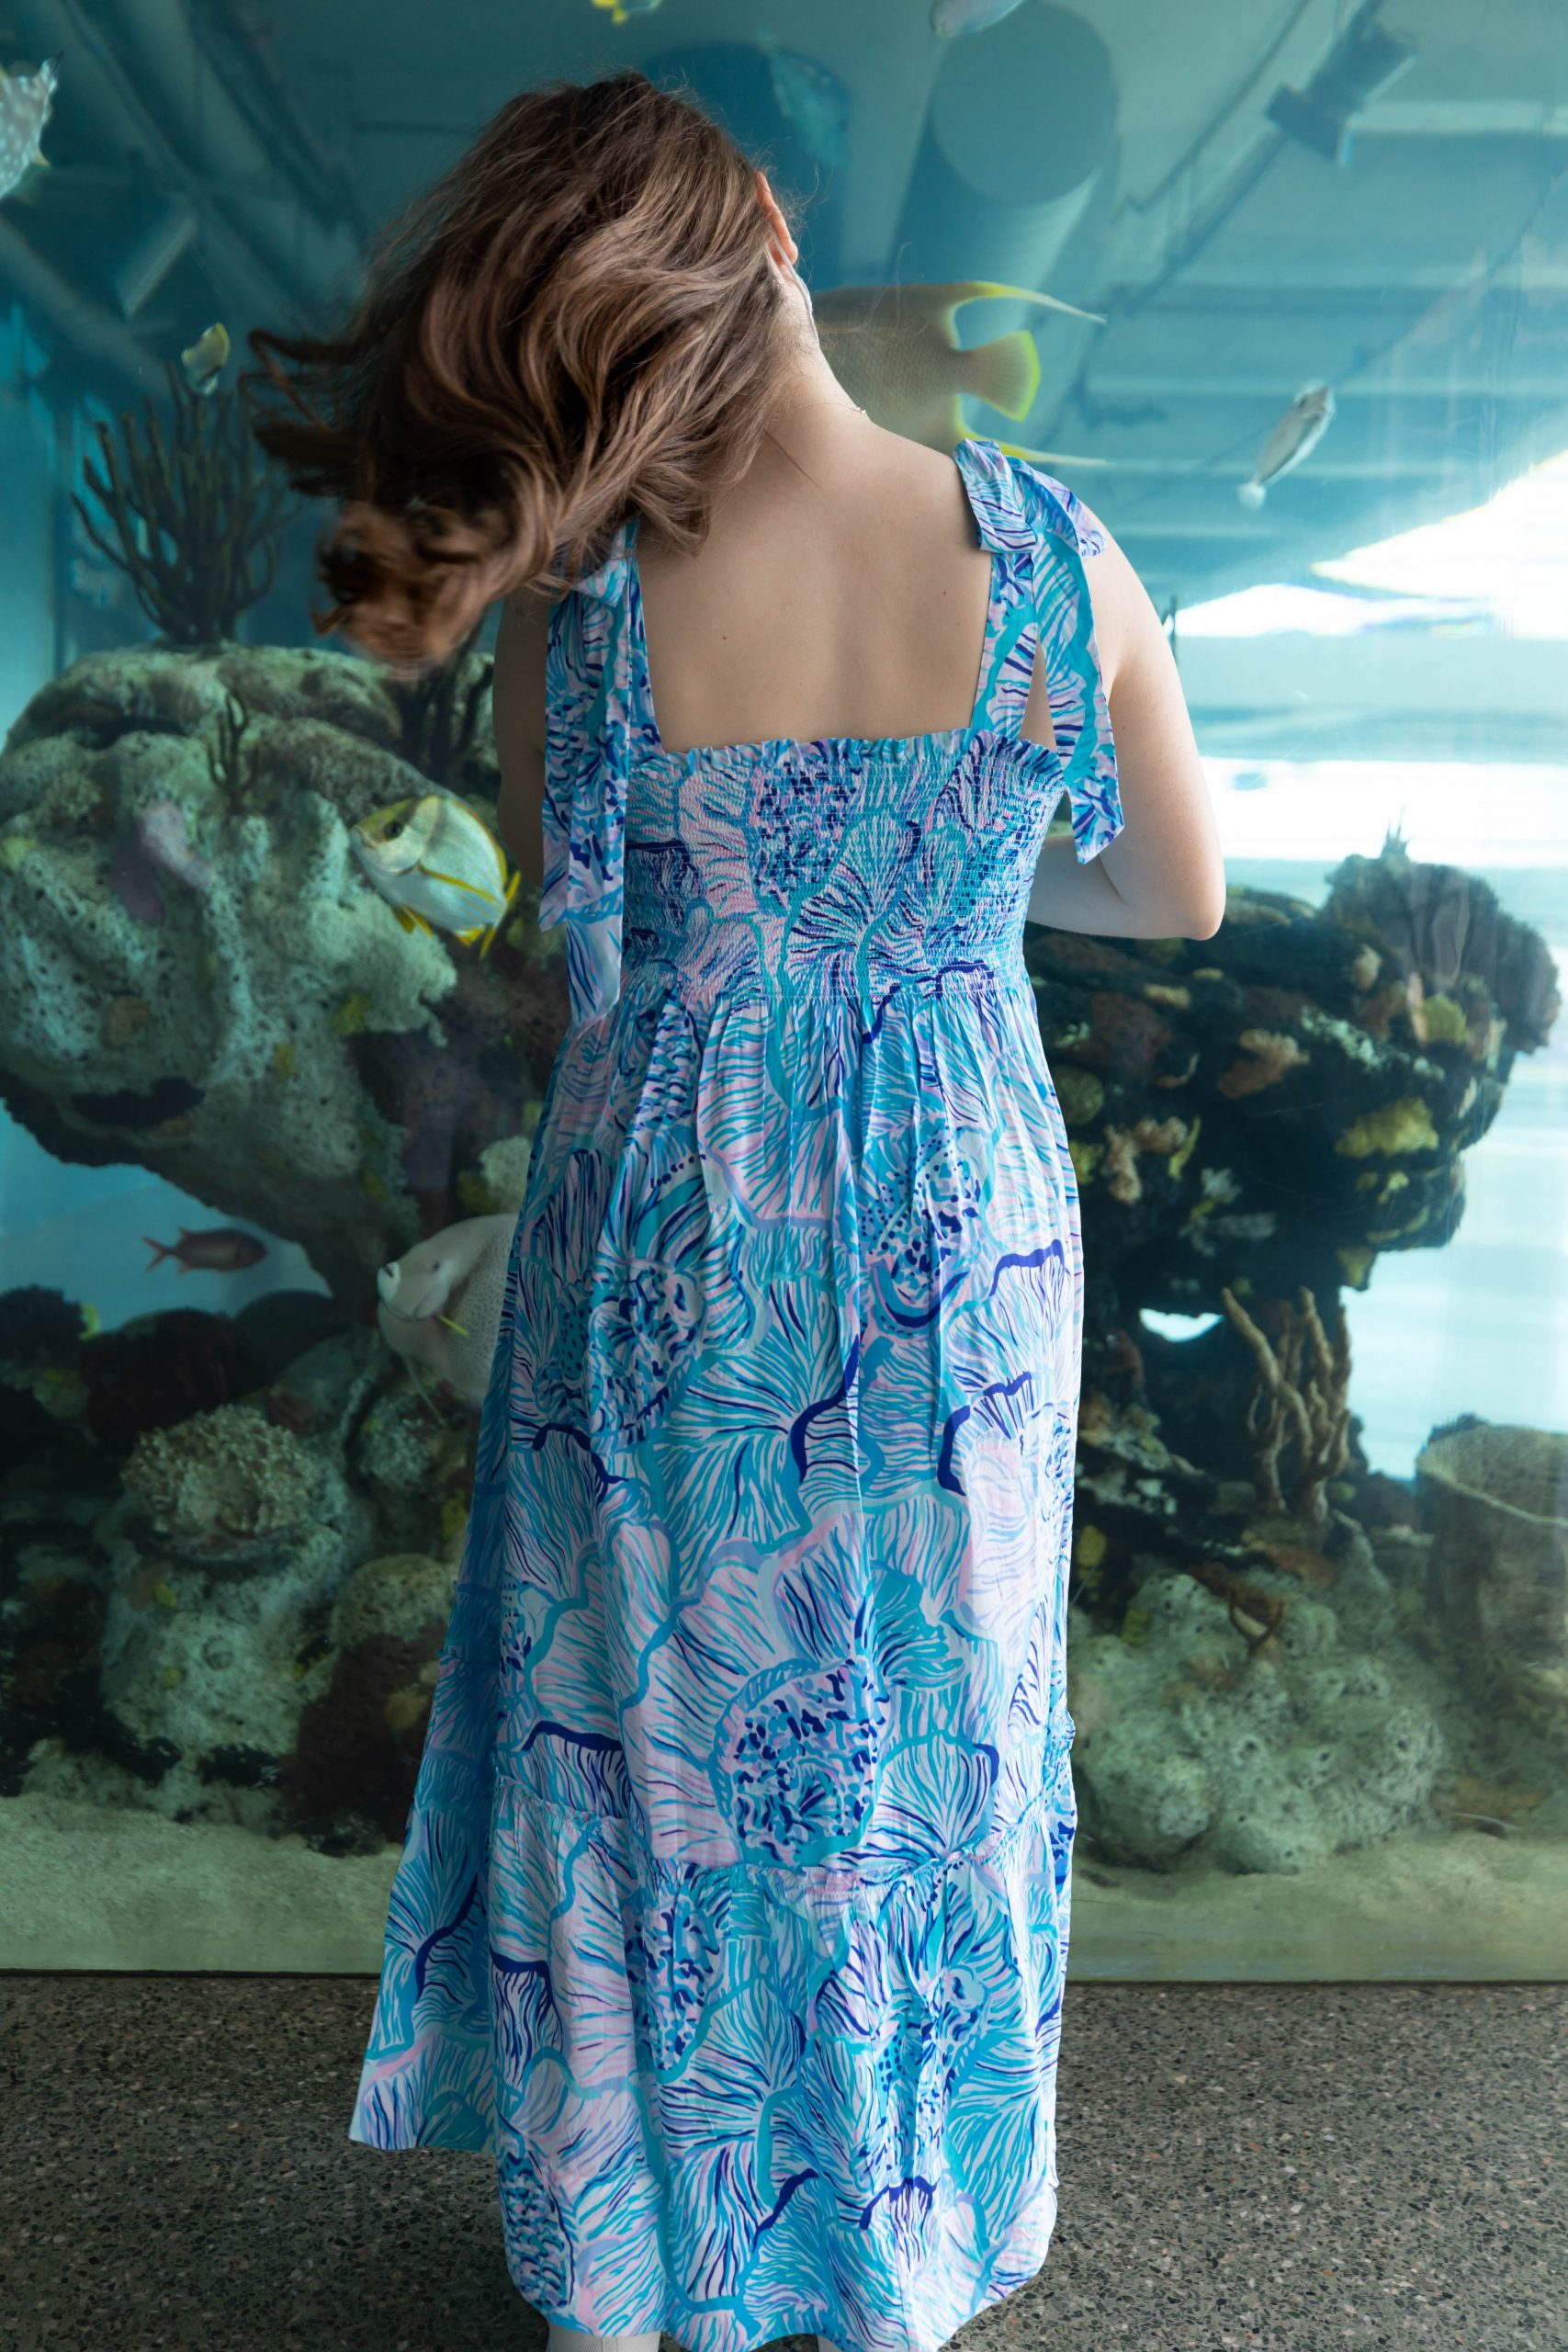 Fishful Thinking Lilly Pulitzer Rivera Dress at The South Carolina Aquarium & Sea Turtle Care Center Photographed by Luxury Travel Writer Annie Fairfax